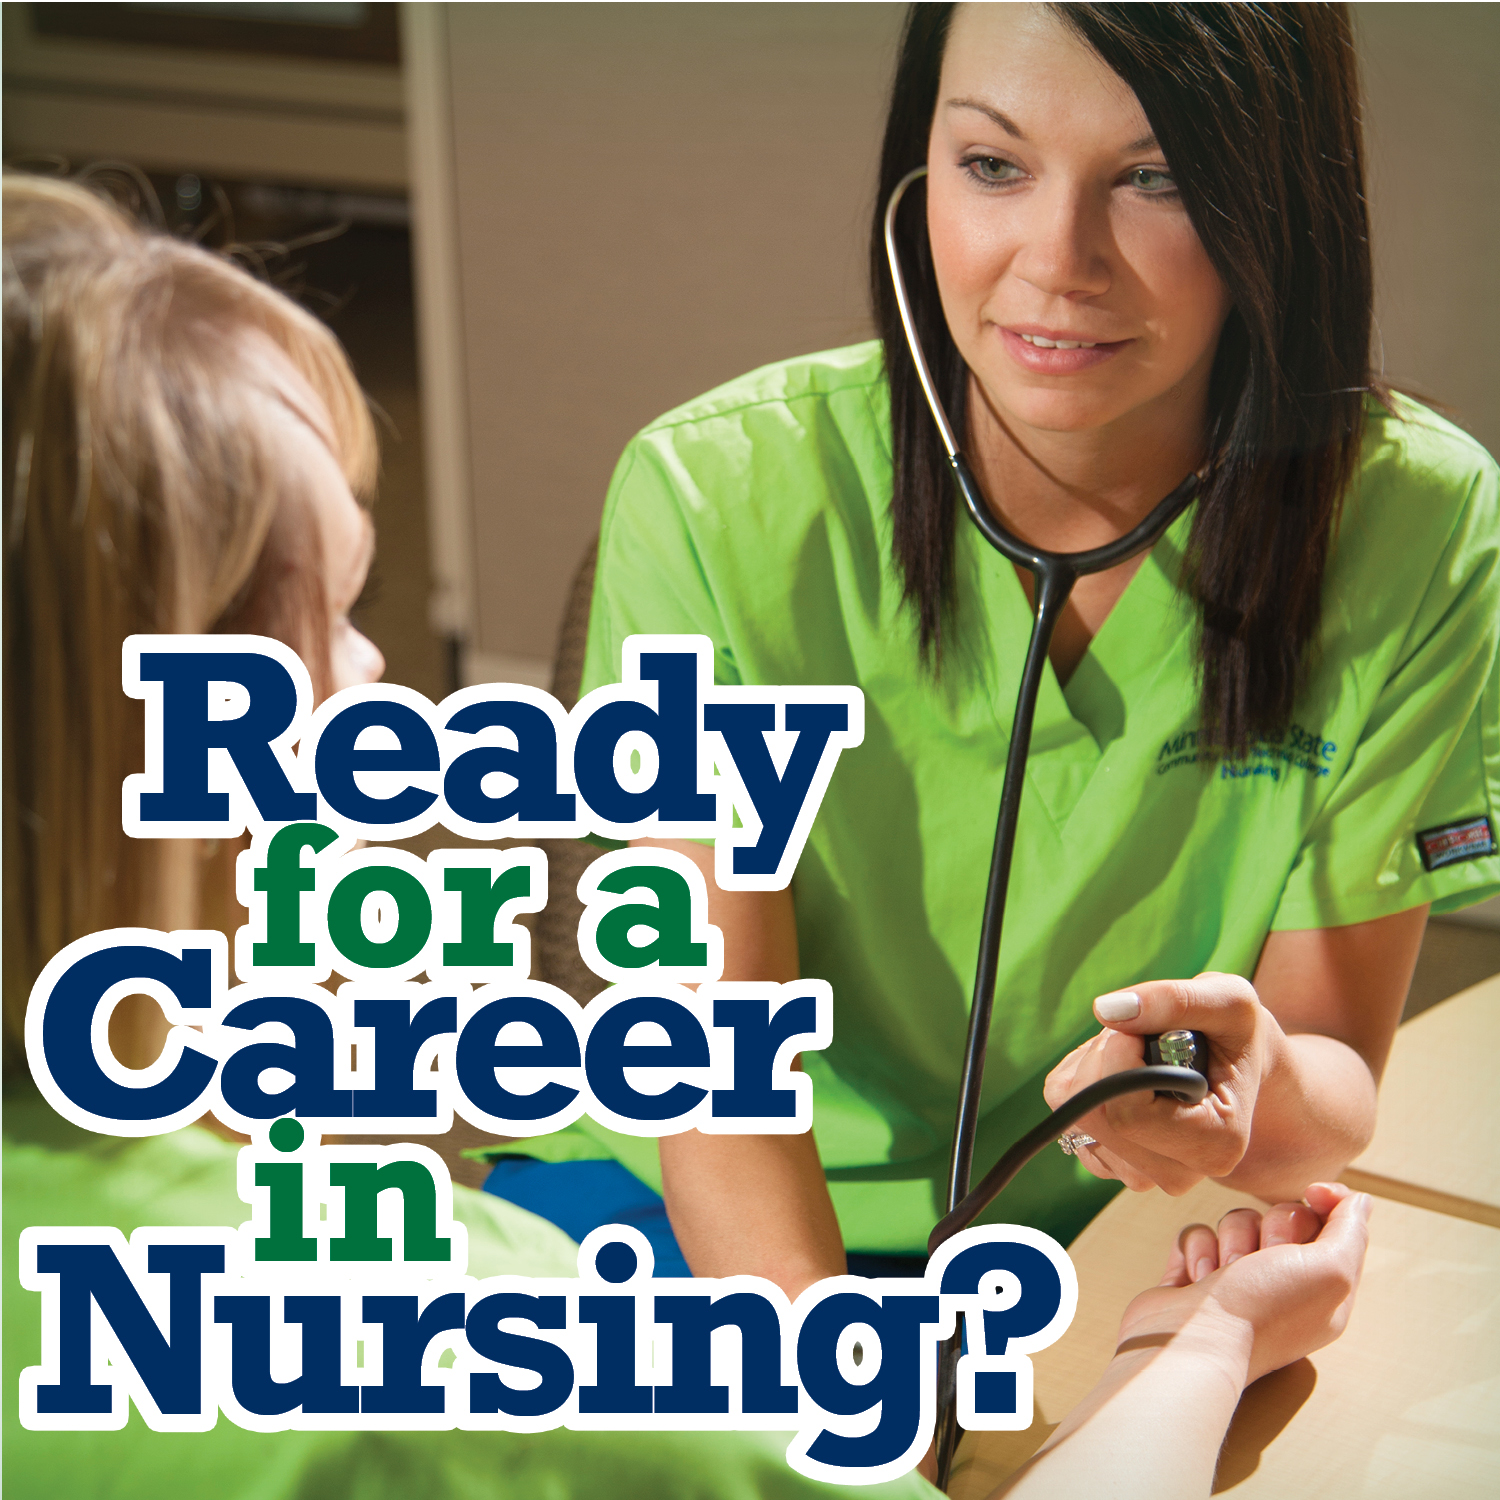 There's still time to apply to M State's Practical Nursing Program for Spring Semester.